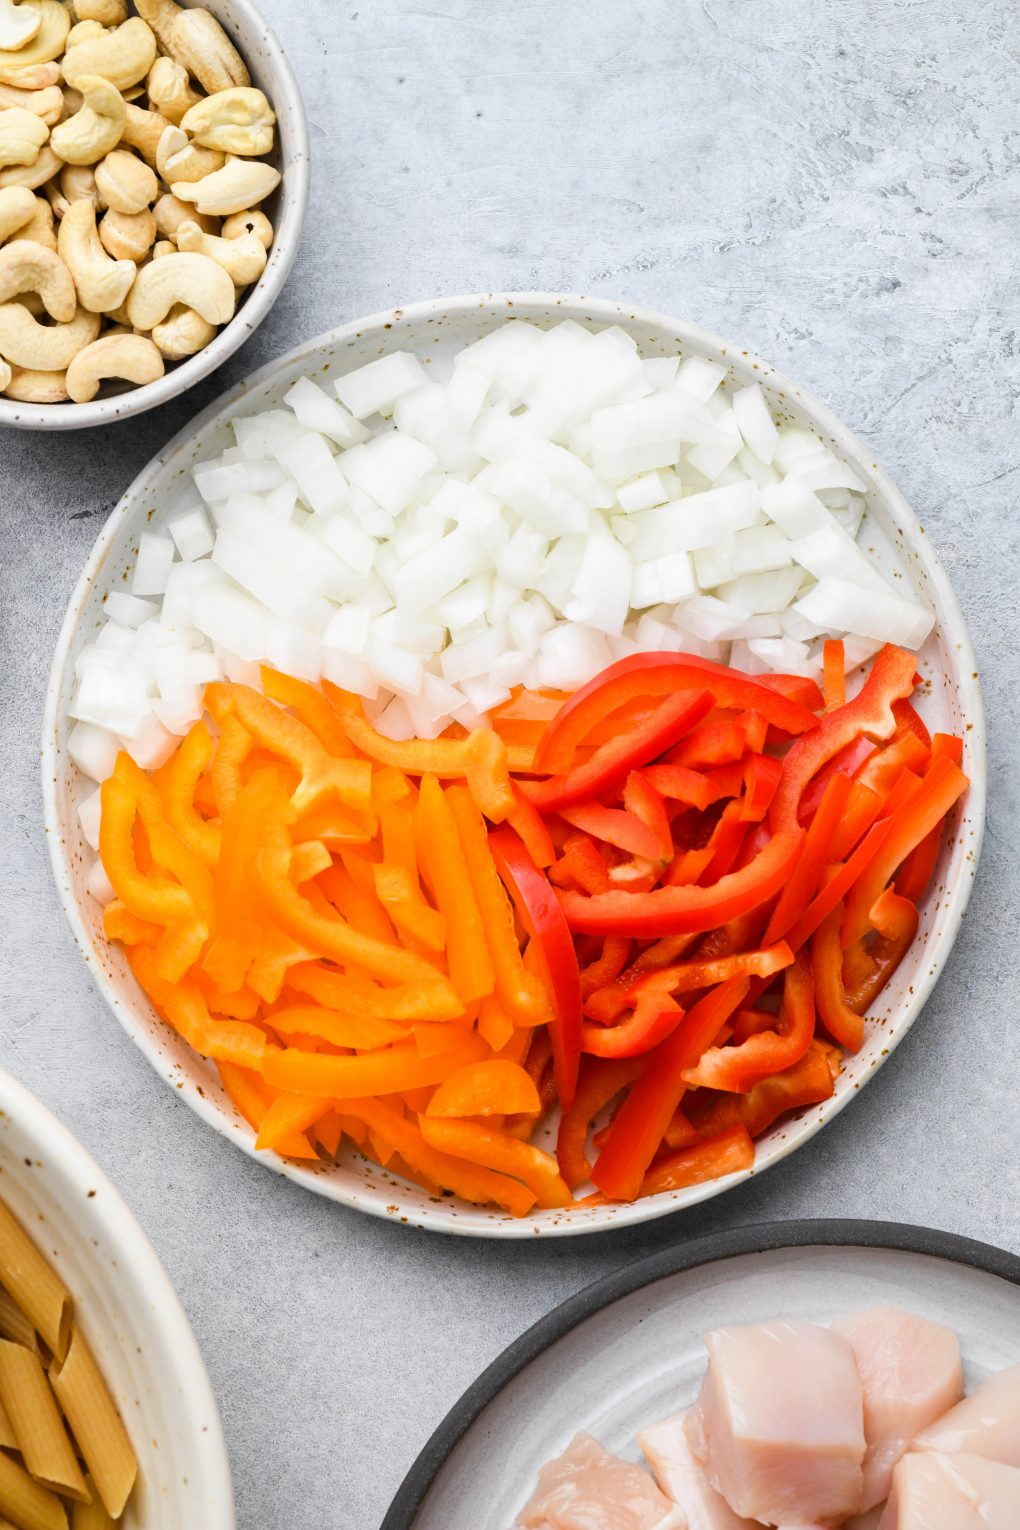 A large speckled white plate filled with chopped onion, orange pepper and red pepper on a light colored background.